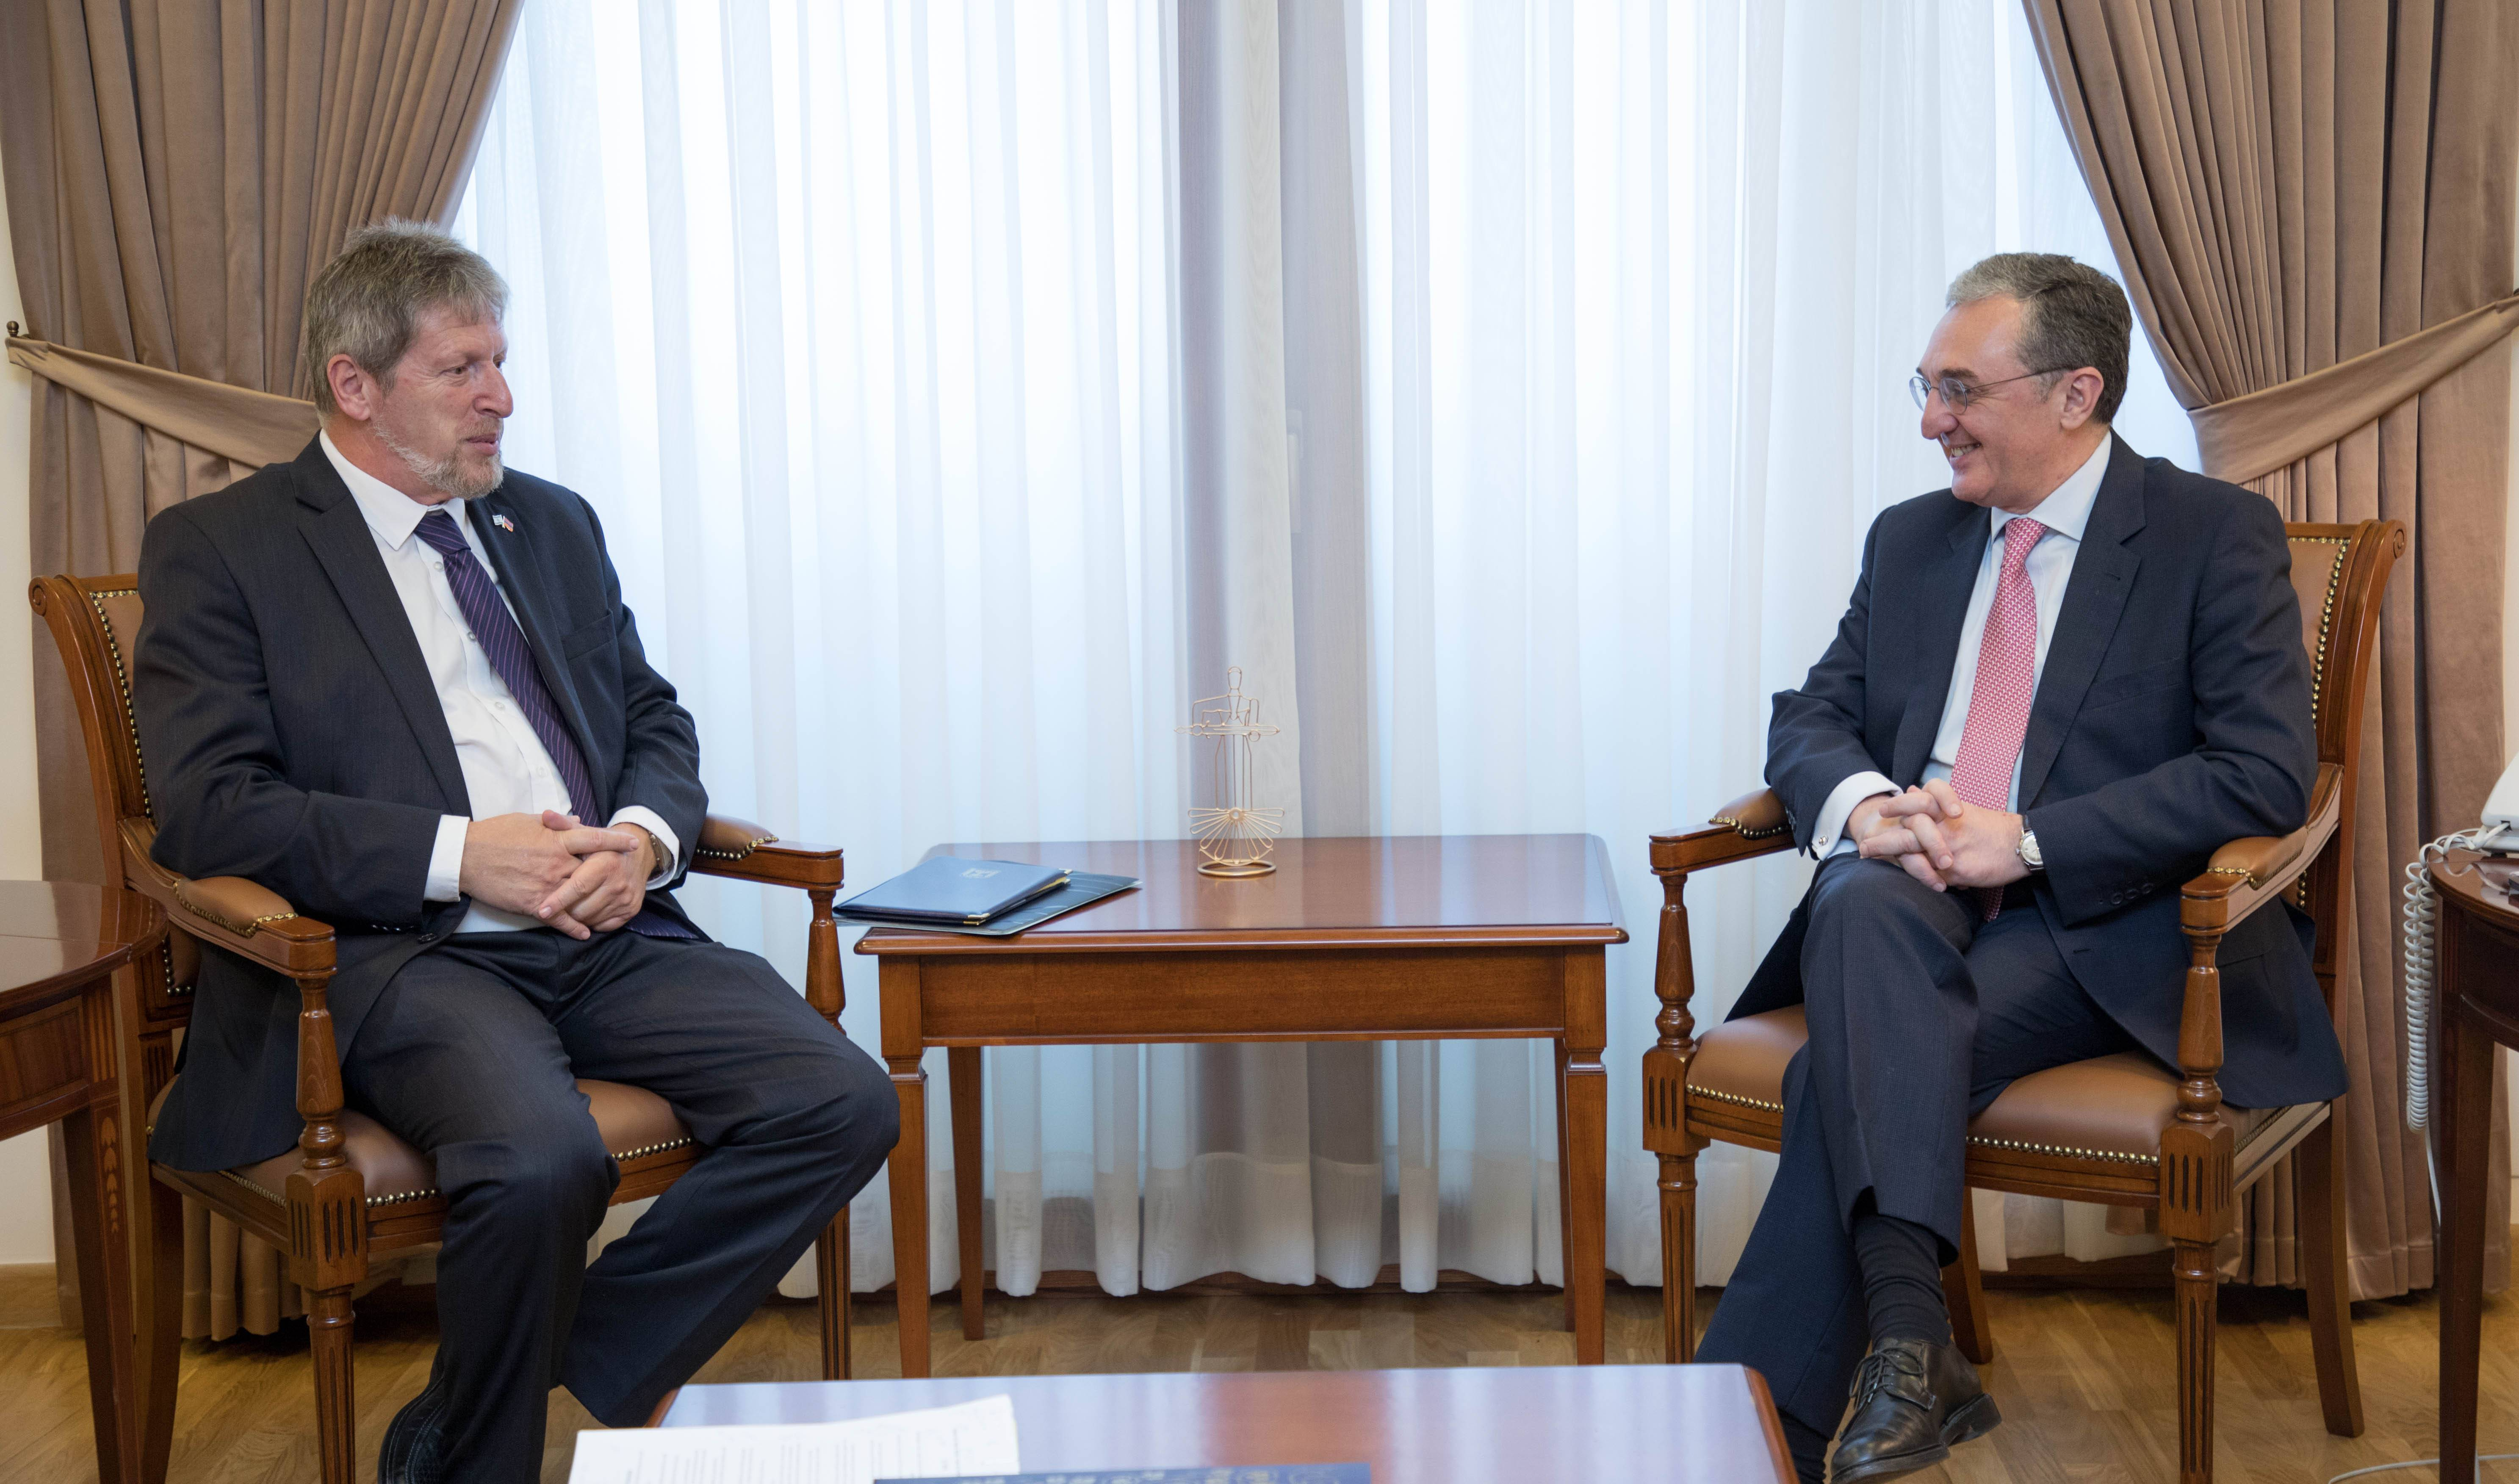 Foreign Minister of Armenia received Deputy Director General and Director of the Eurasia Department of the Foreign Ministry of Israel